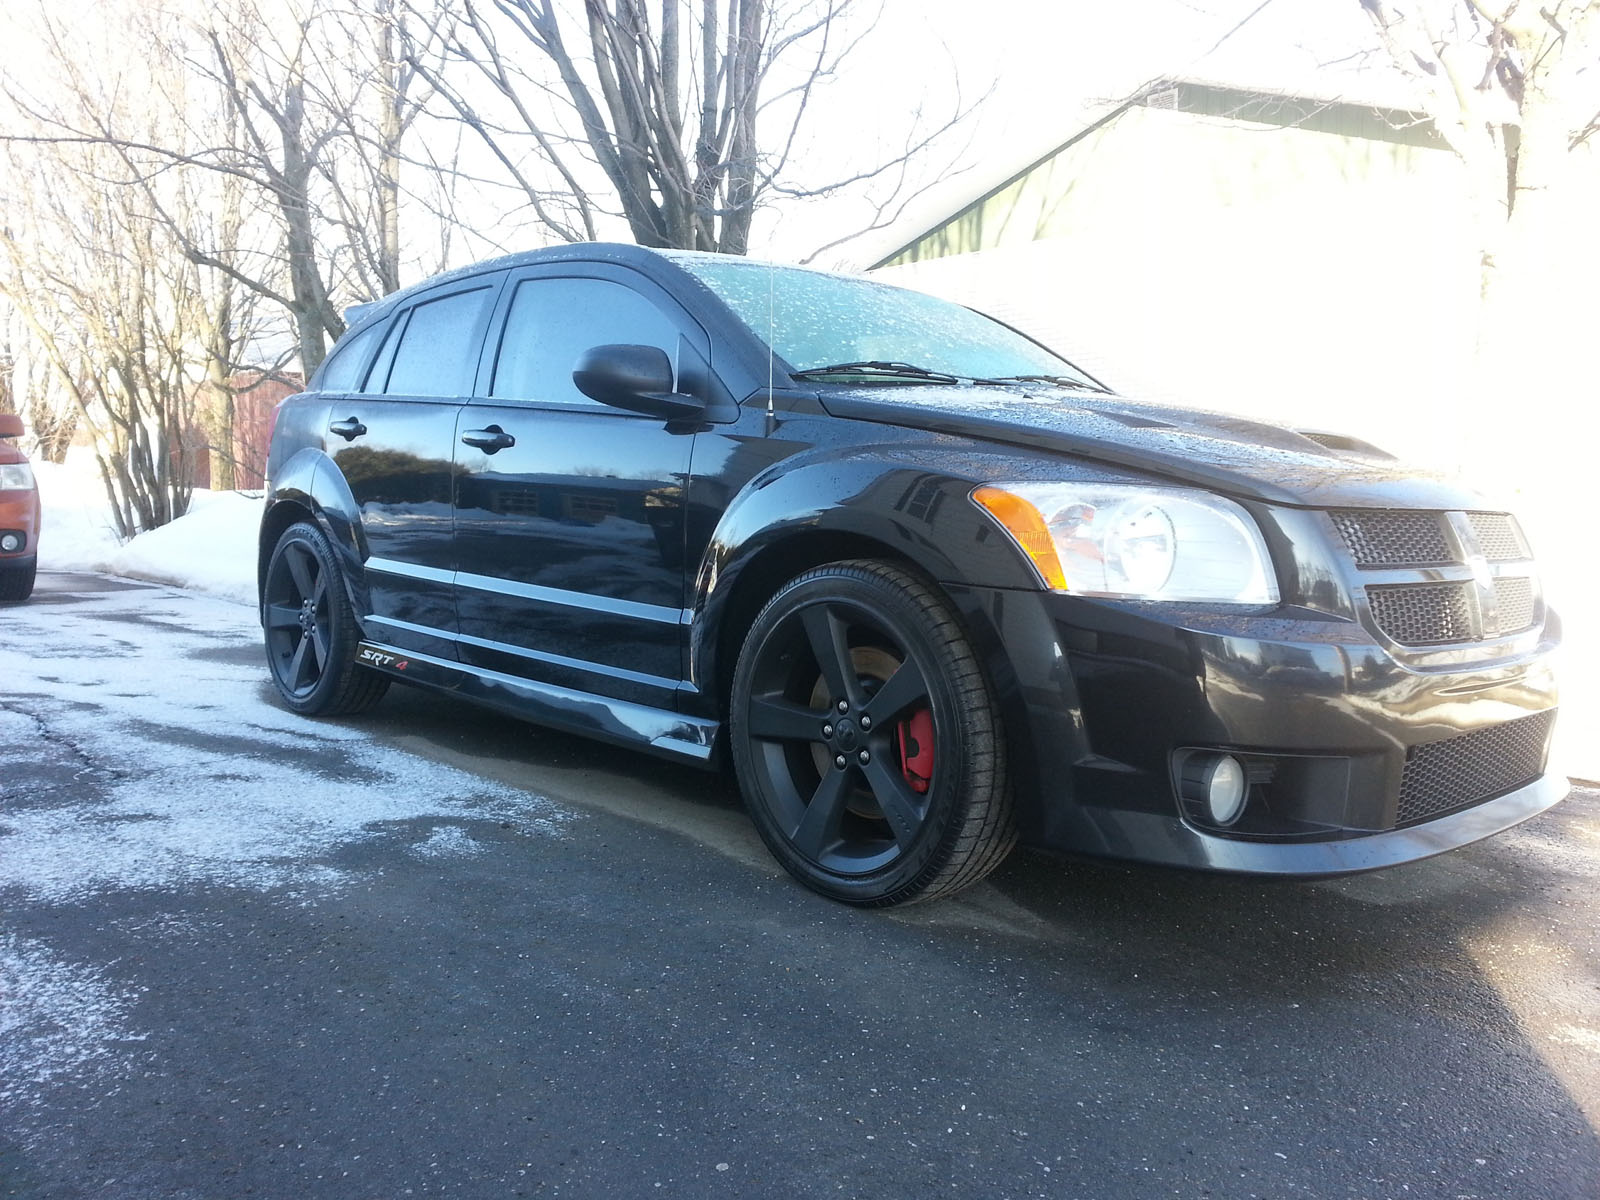 2009 black Dodge Caliber SRT-4  picture, mods, upgrades